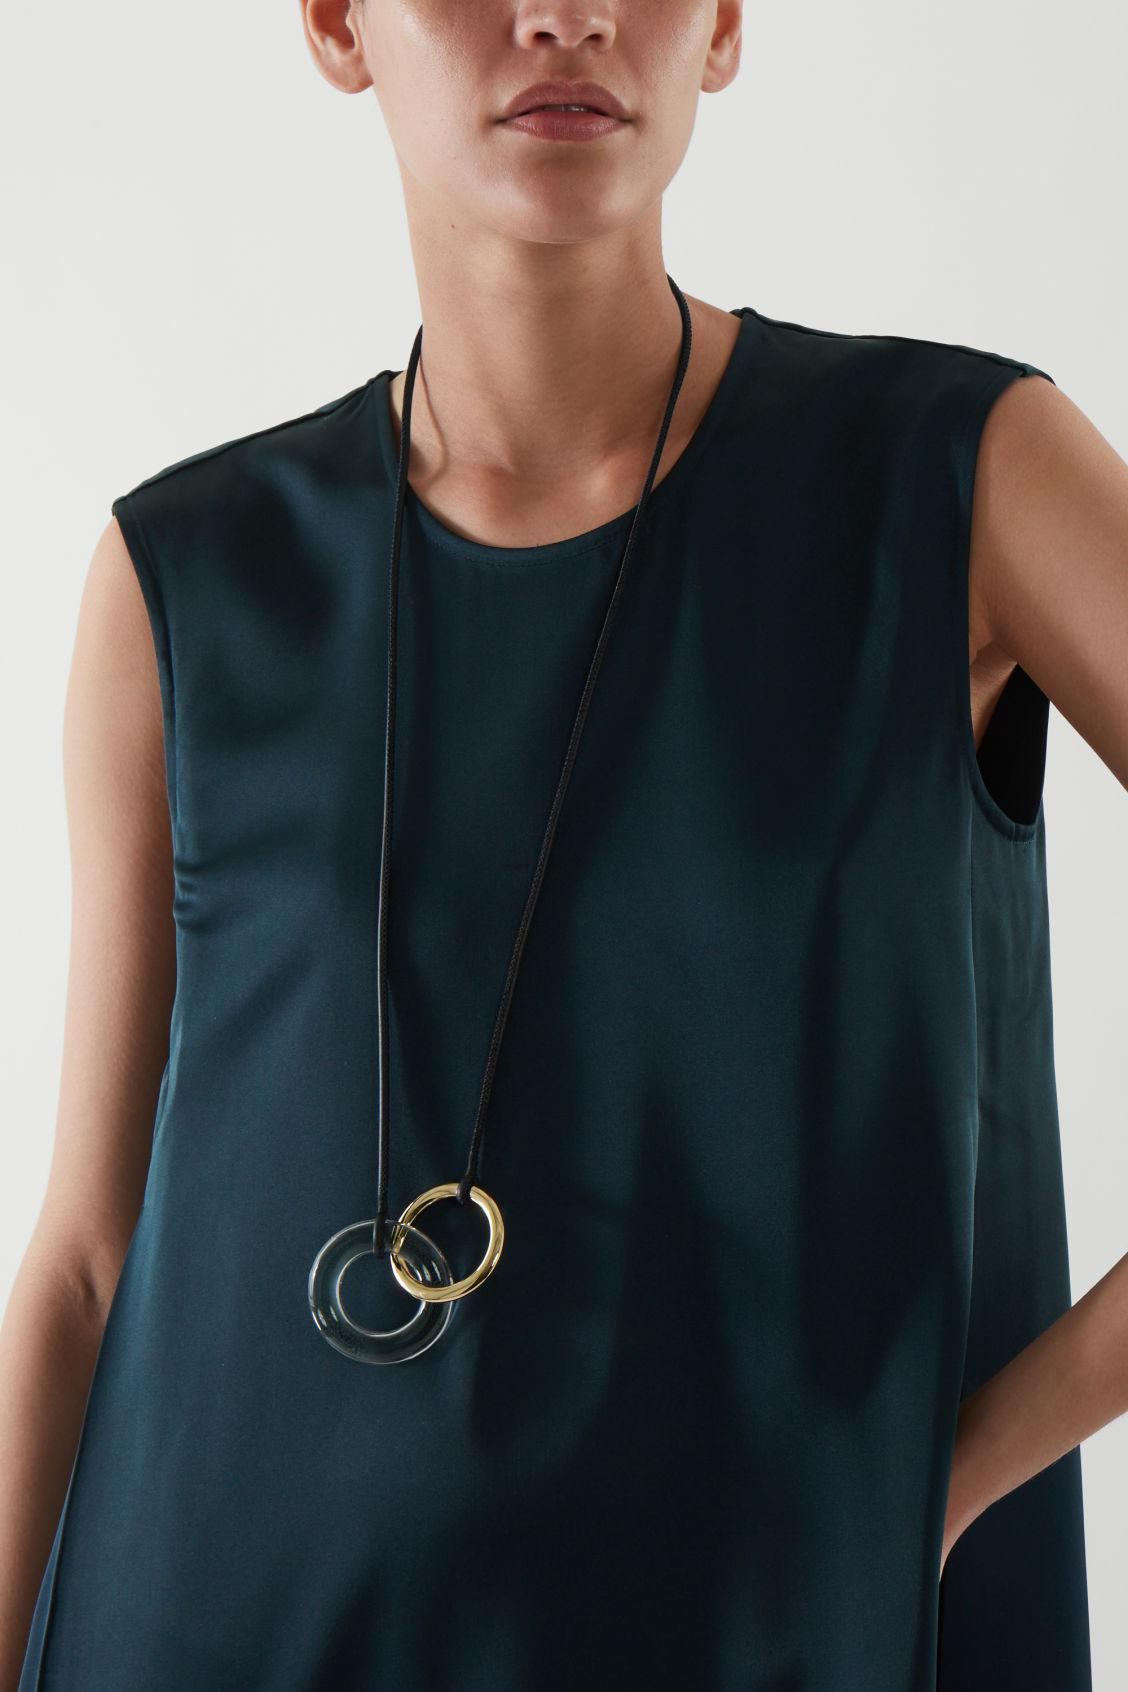 INTERLINKED RING NECKLACE 2